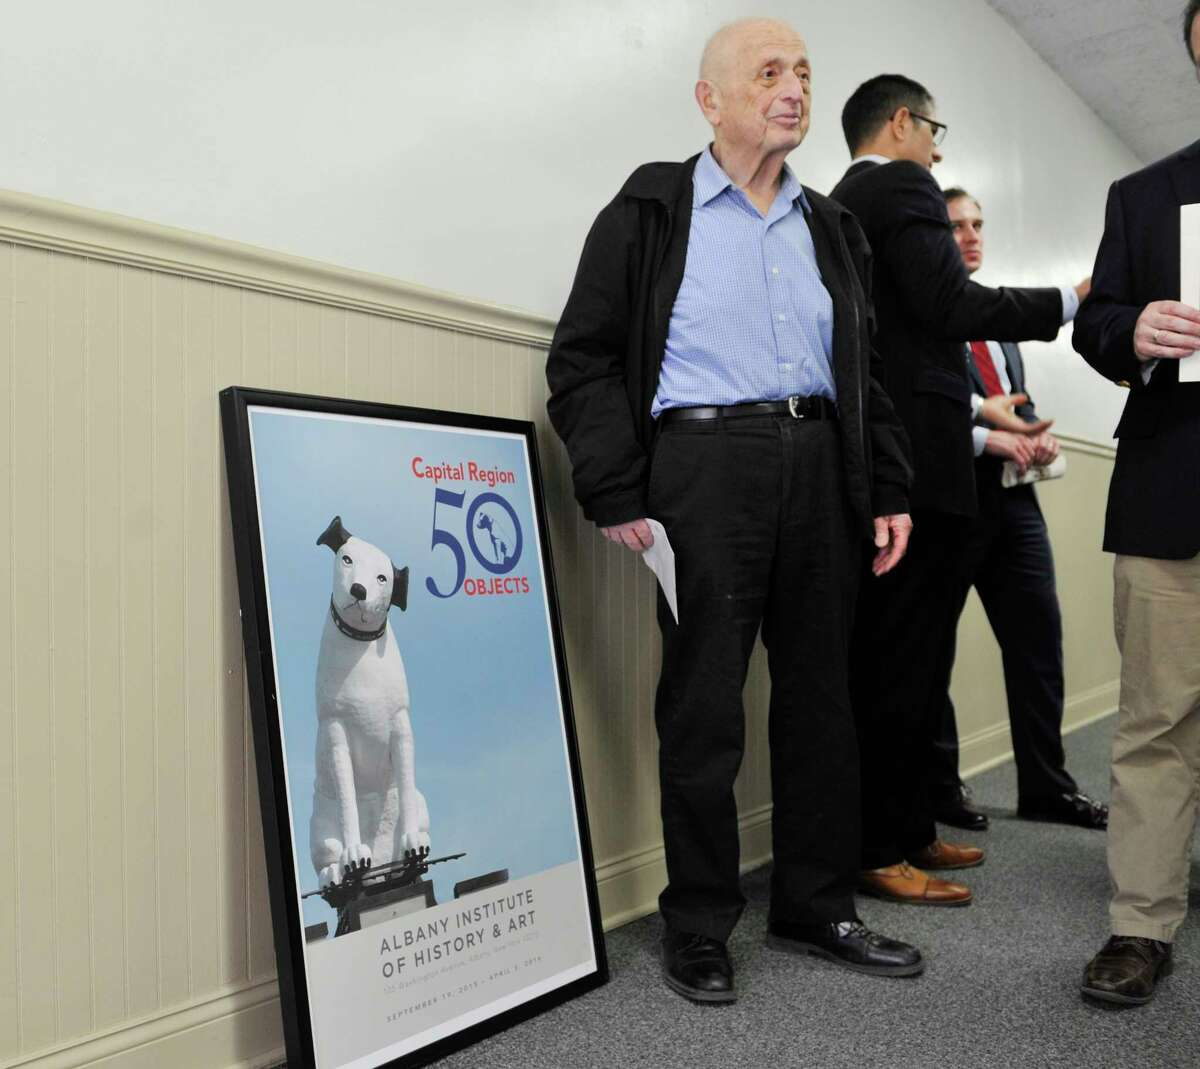 Harris Sanders stands next to an image of Nipper on top of the Arnoff building at 991 Broadway, as Sanders attended a press conference held by Senator Charles Schumer on Monday, April 25, 2016, in Albany, N.Y. Sanders passed away Sept. 18 (Paul Buckowski / Times Union)